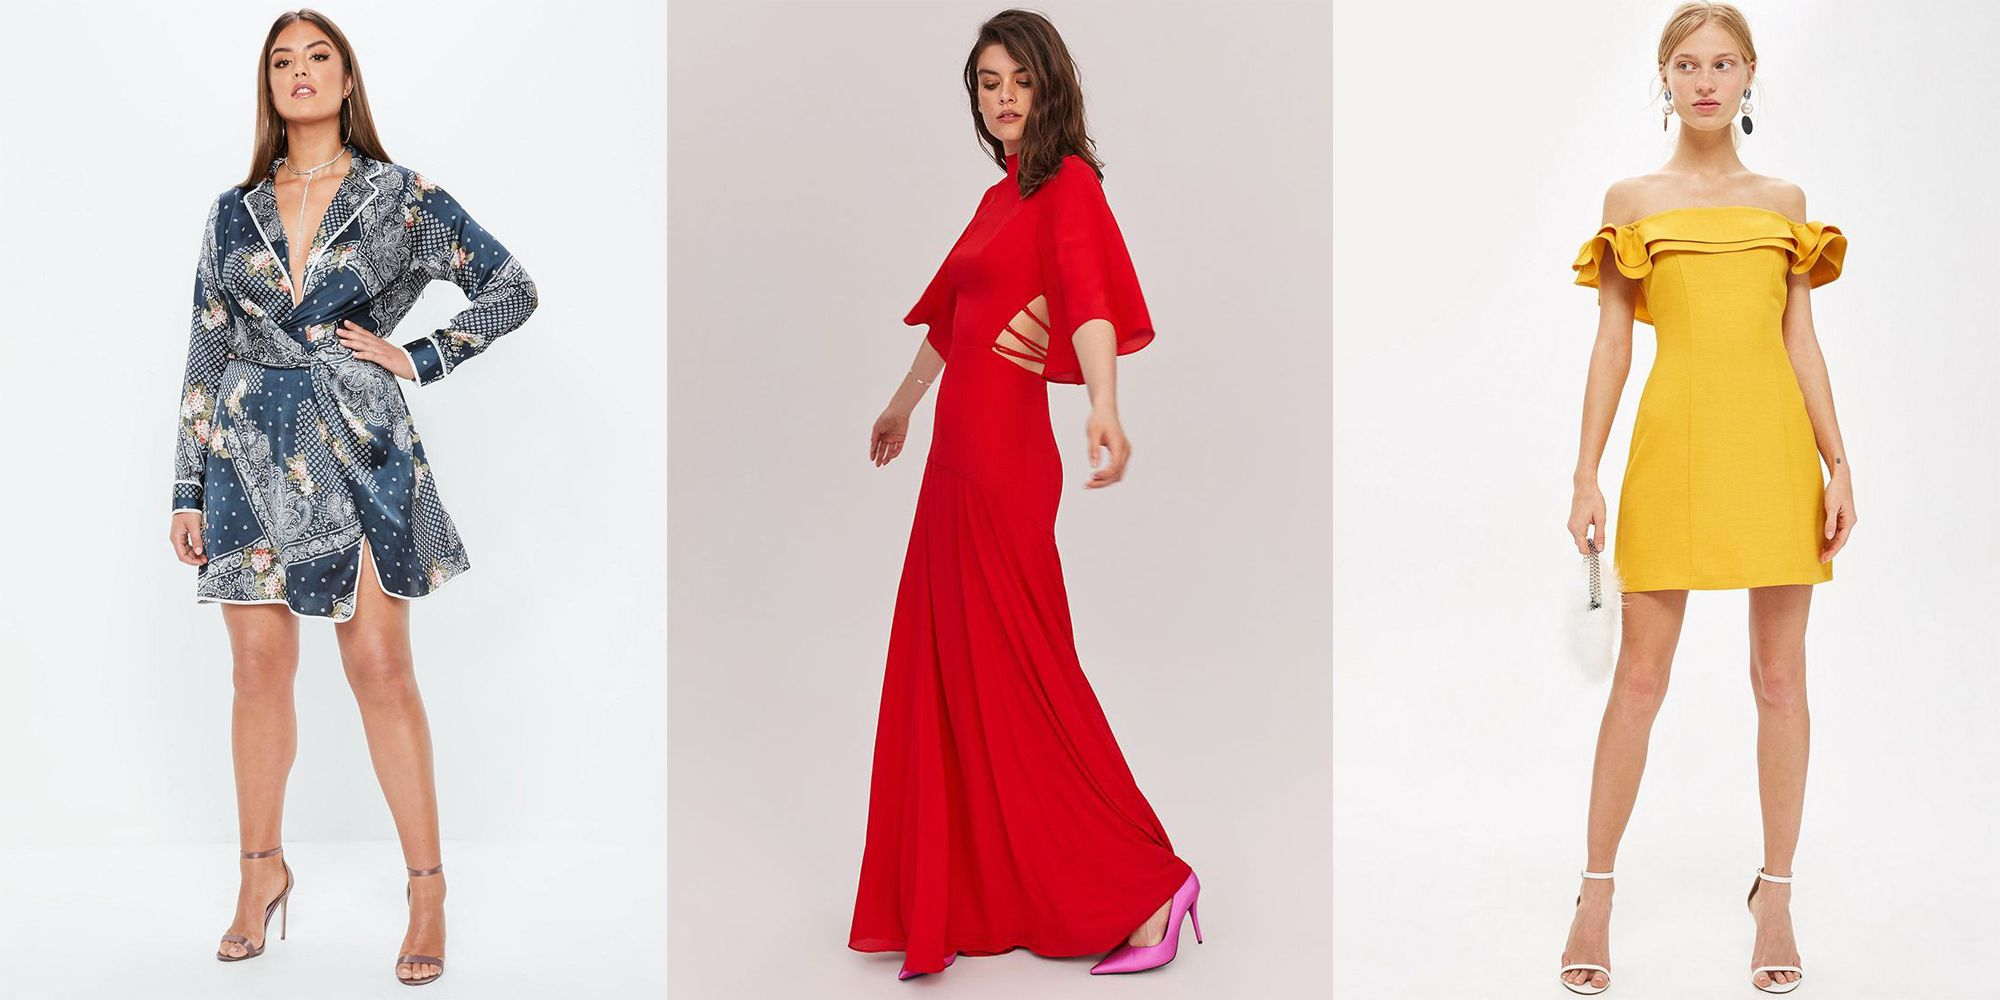 680ece9f814f 17 Fall Wedding Guest Dresses — What to Wear to a Fall Wedding